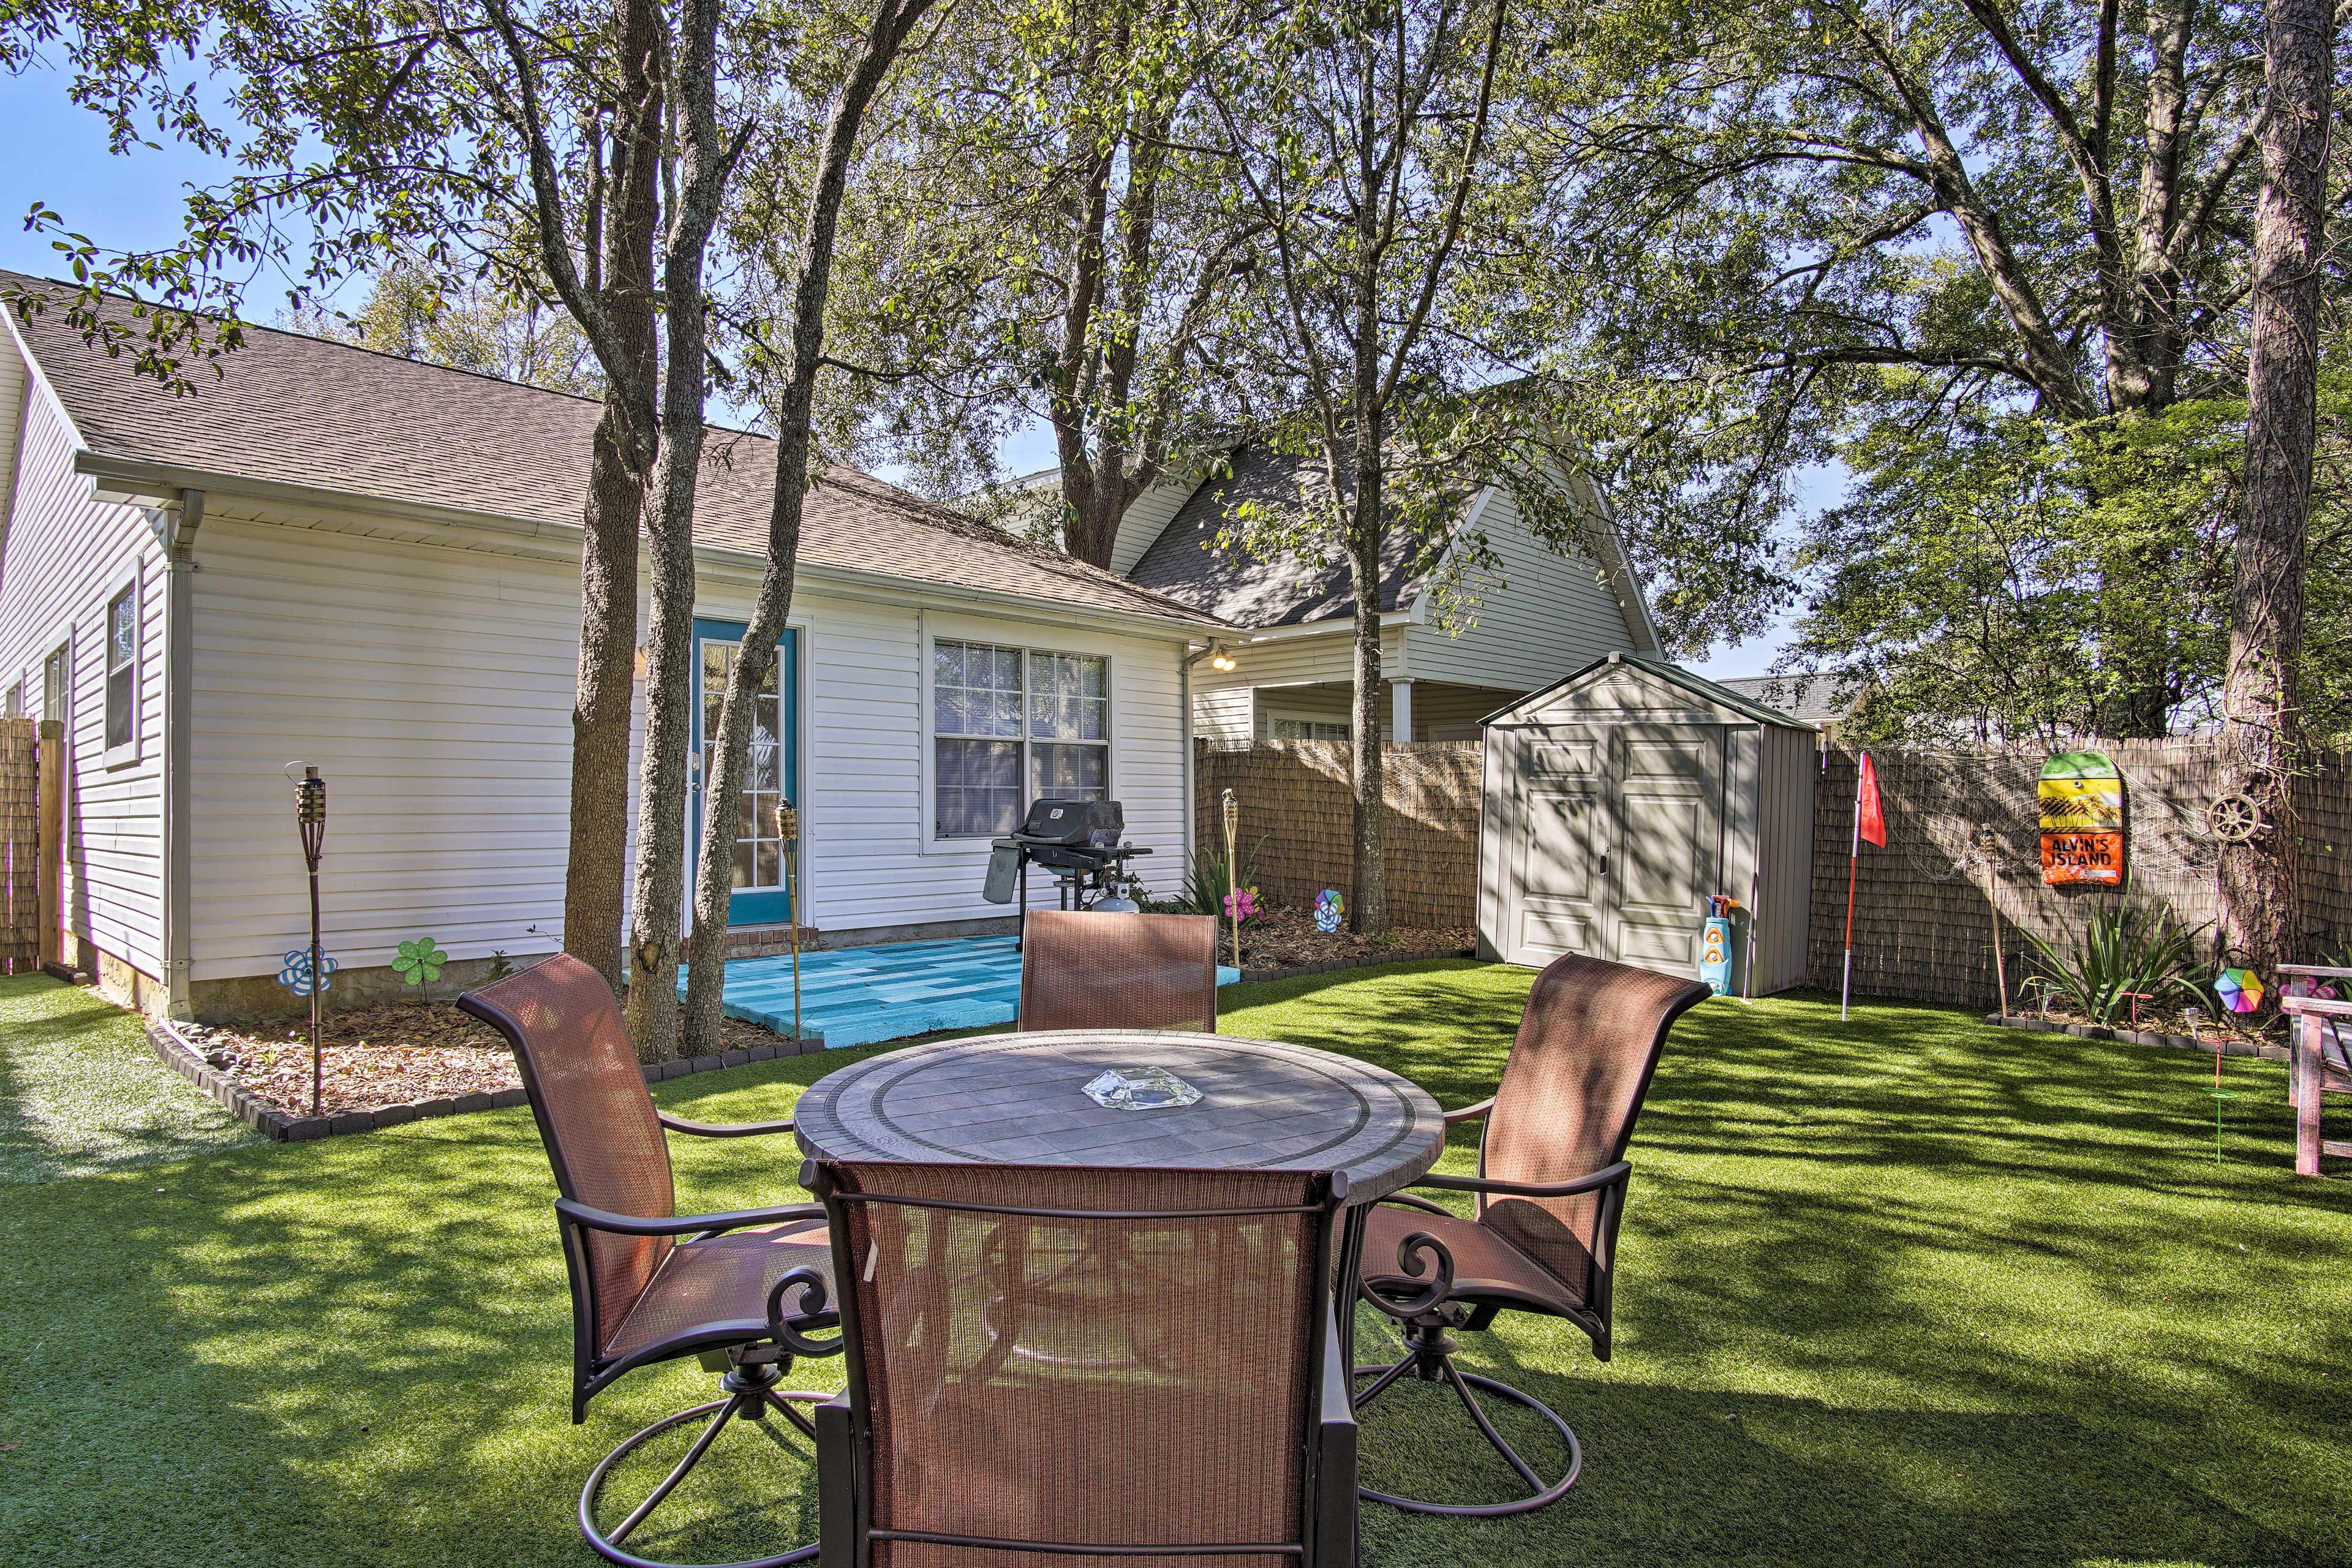 Ideally situated in Pensacola, this home is just 20 minutes from downtown.